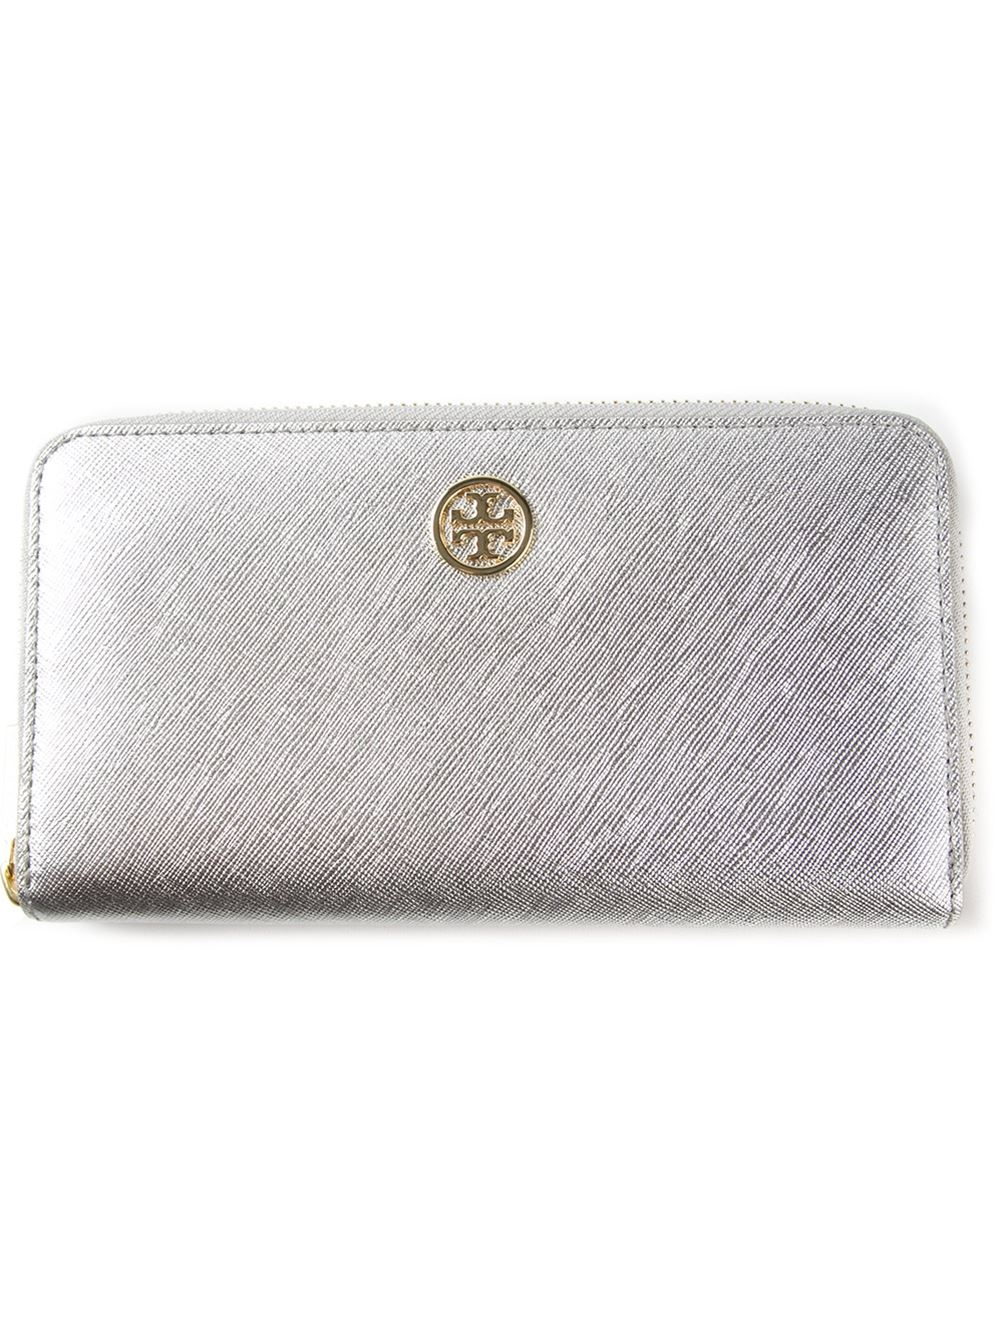 Lyst Tory Burch Robinson Zip Continental Wallet In Metallic